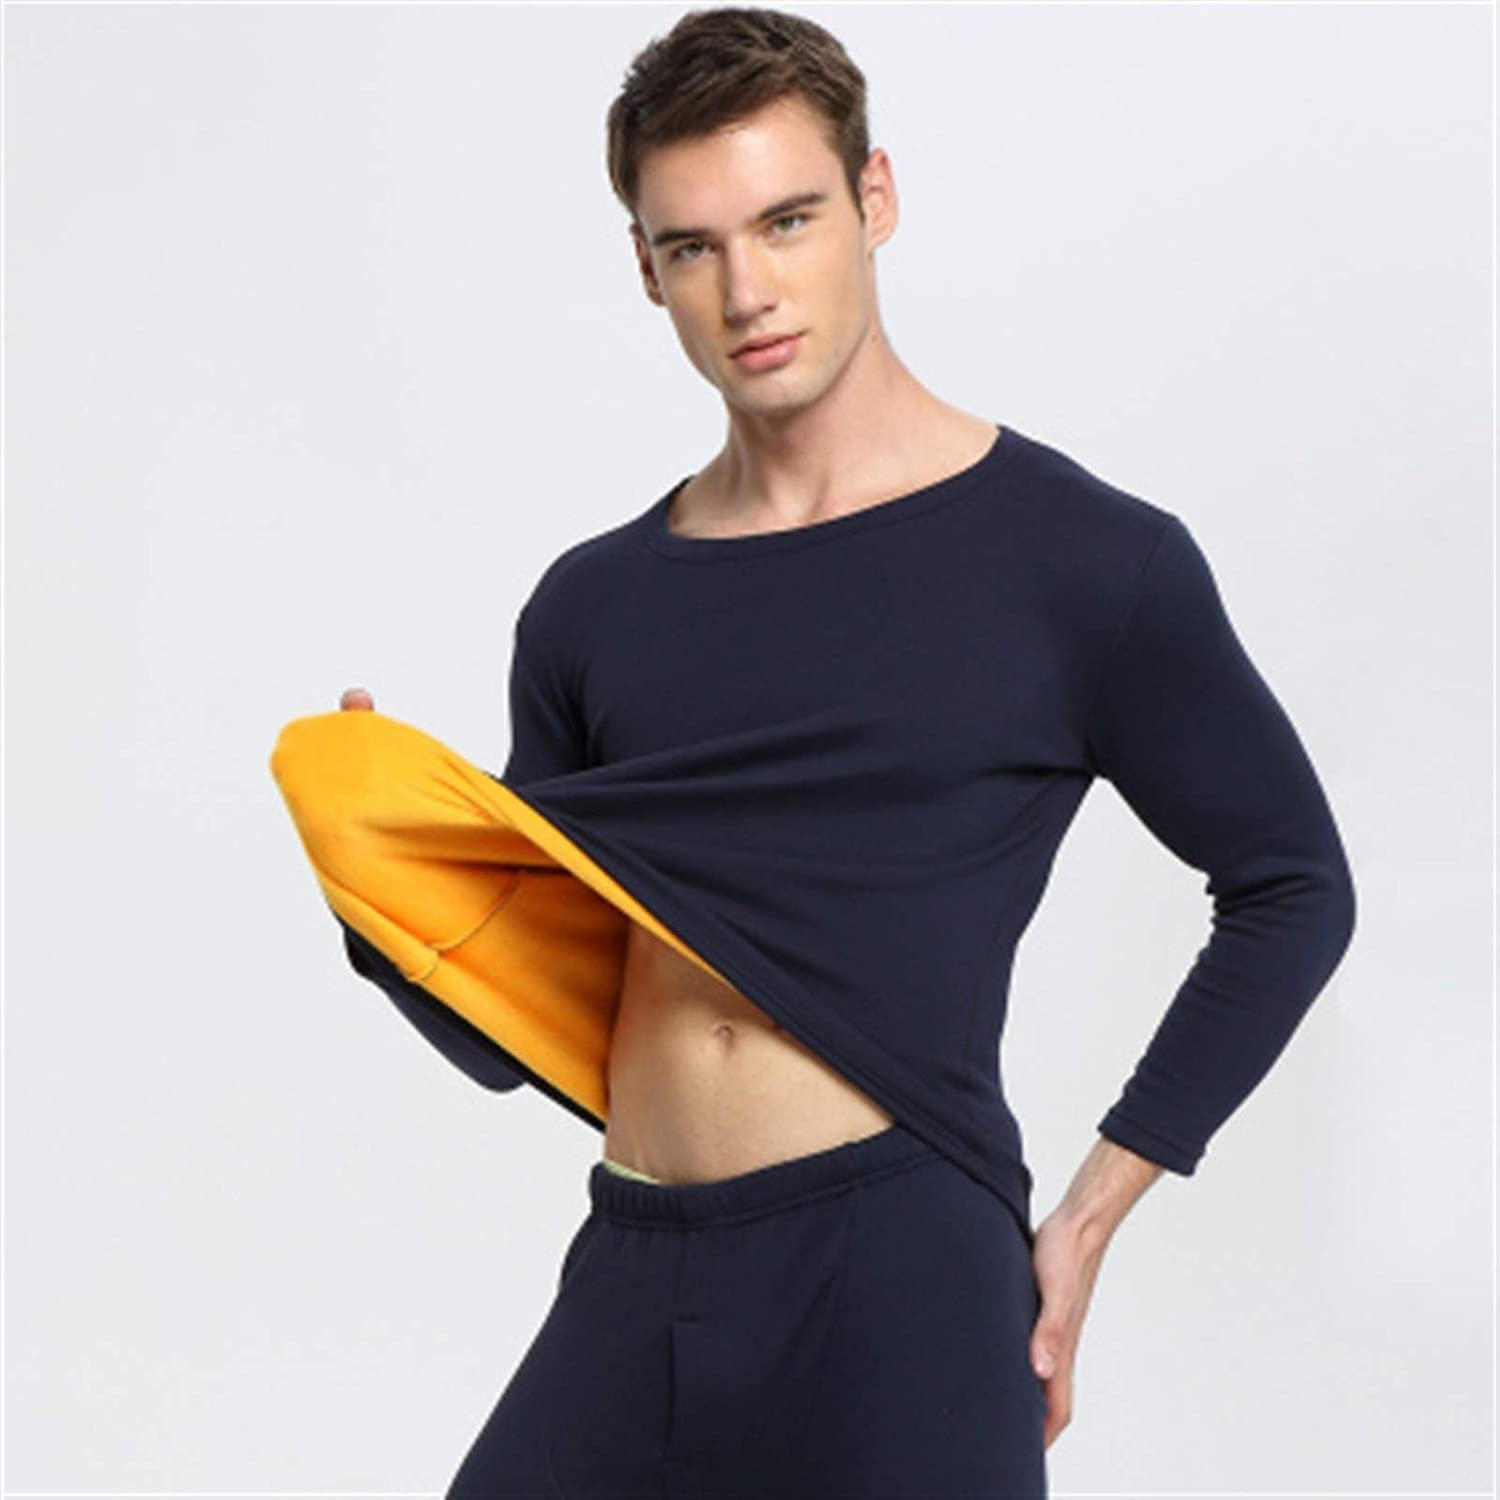 ZHANGZEHONG Thermal Underwear Men Winter Women Long Johns Sets Fleece Keep Warm in Cold Weather Size L to 6XL (Color : Navyblue, Size : XXXXX-Large)